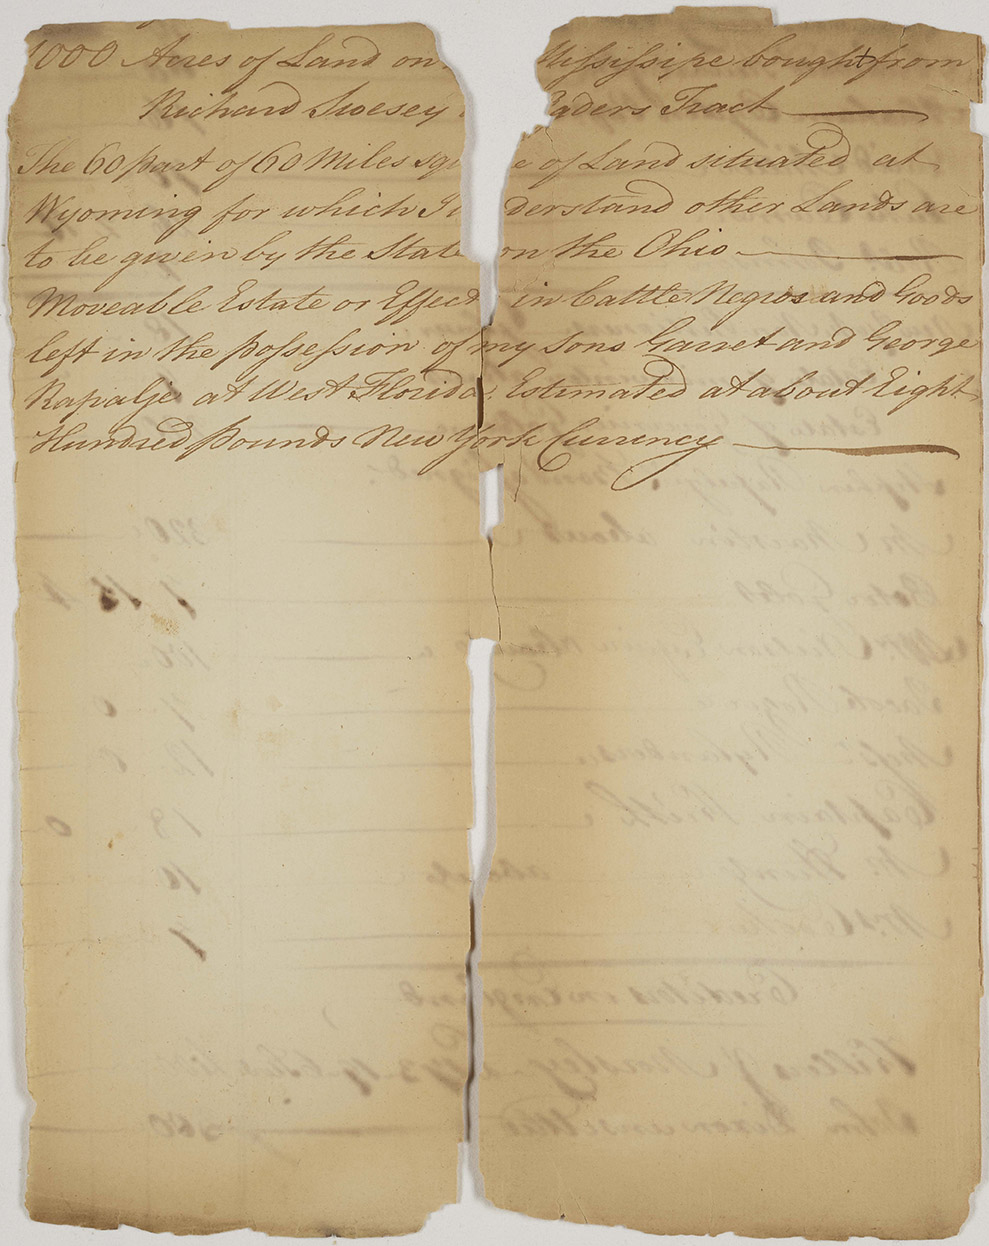 "This account and inventory of real estate and personal estate of Garret Rapalje: ""Moveable Estate of Effect in Cattle Negros Goods,"" 1787, provides evidence that Garret Rapalje was engaged in the enslavement of people at the time of his insolvency petition. He would soon after move to his plantation in what is now Louisiana."